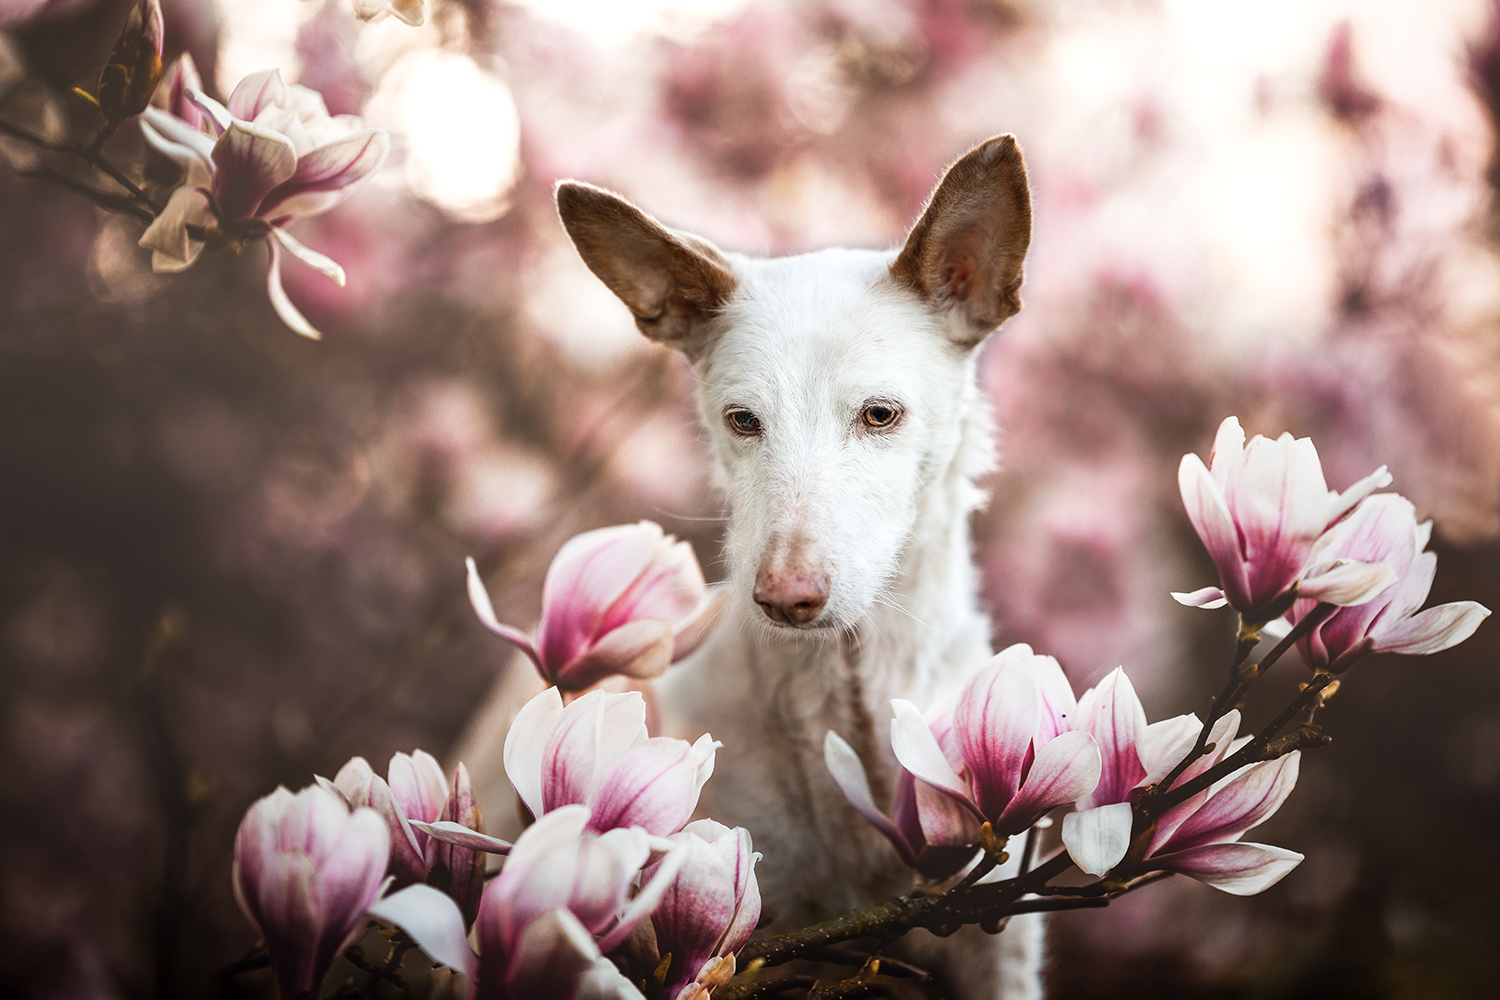 The best dog photos of 2019